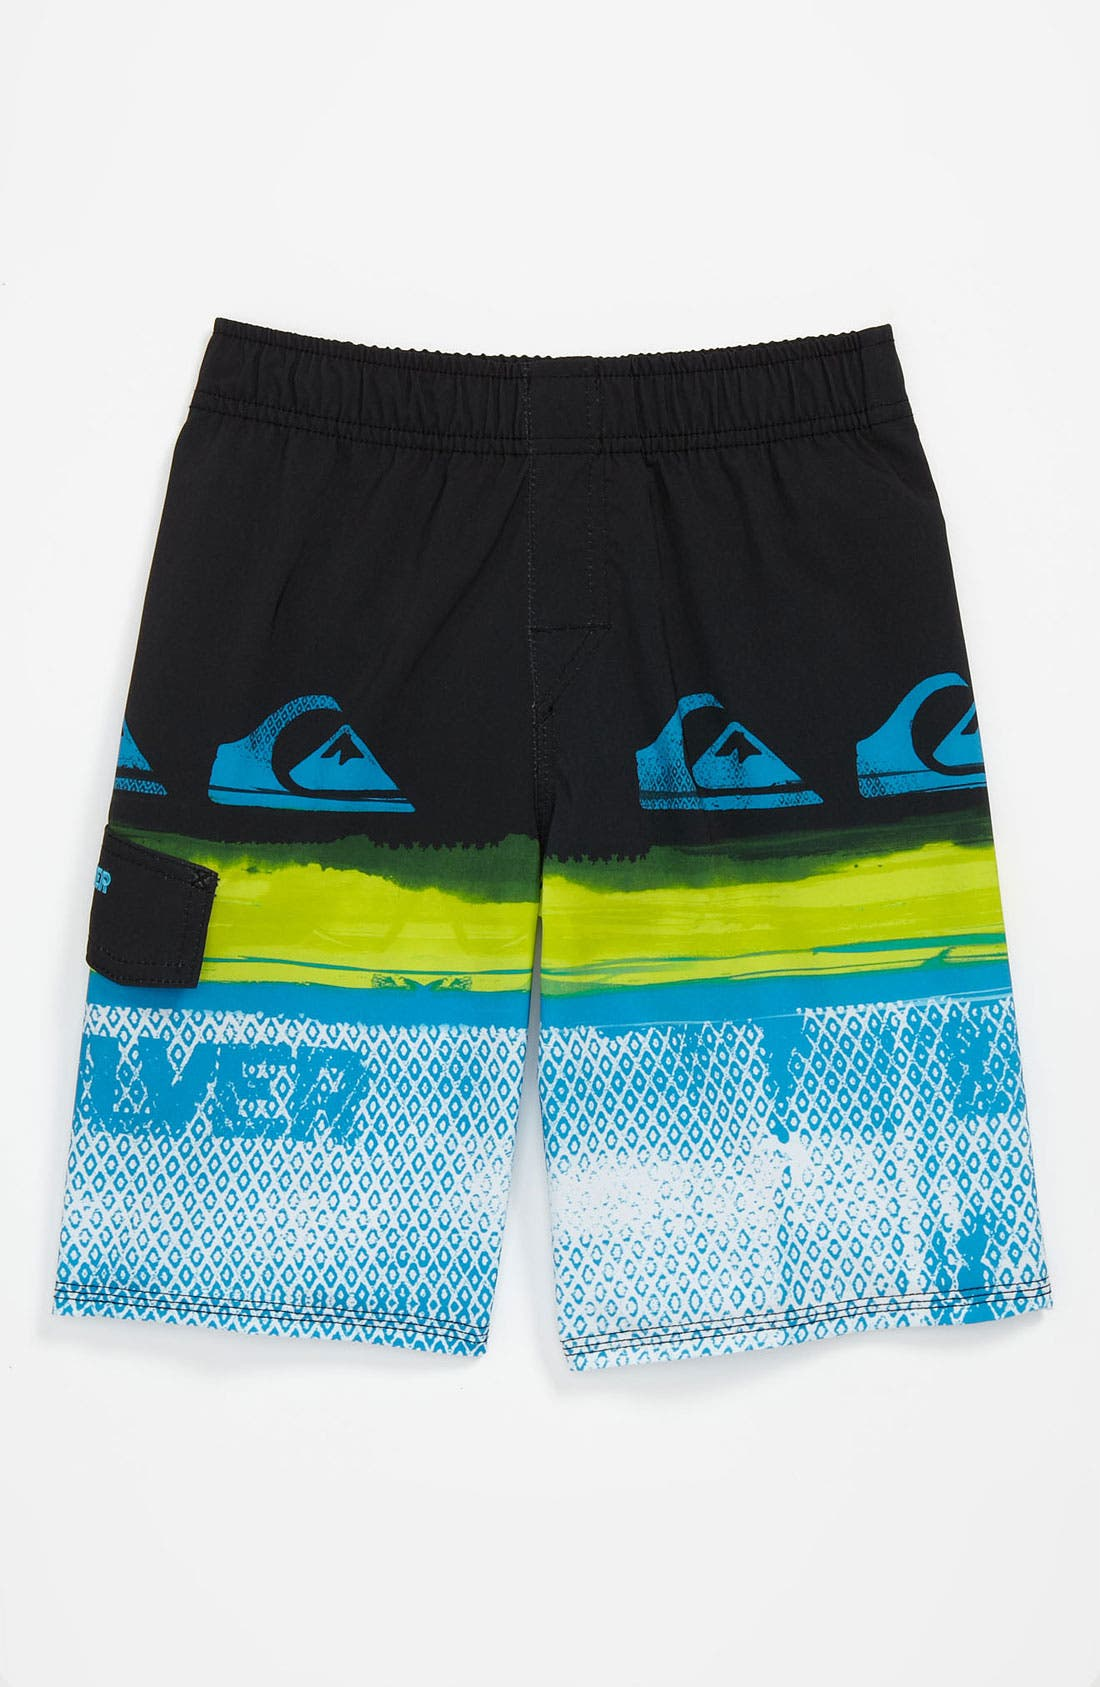 Alternate Image 1 Selected - Quiksilver 'Repeater' Volley Shorts (Little Boys)